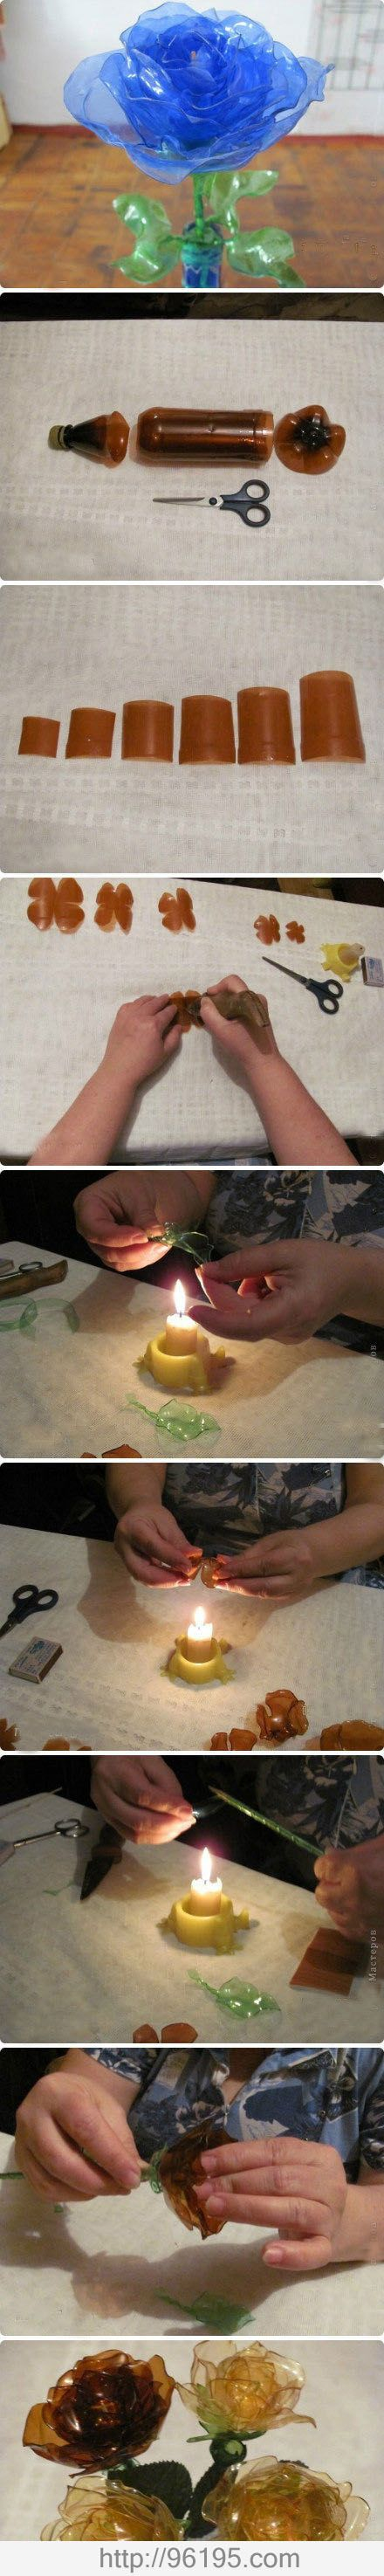 24 Extremely Creative Ways to Re-purpose Plastic Bottles Beautifully [Tutorials Included] homesthetics decor (23)